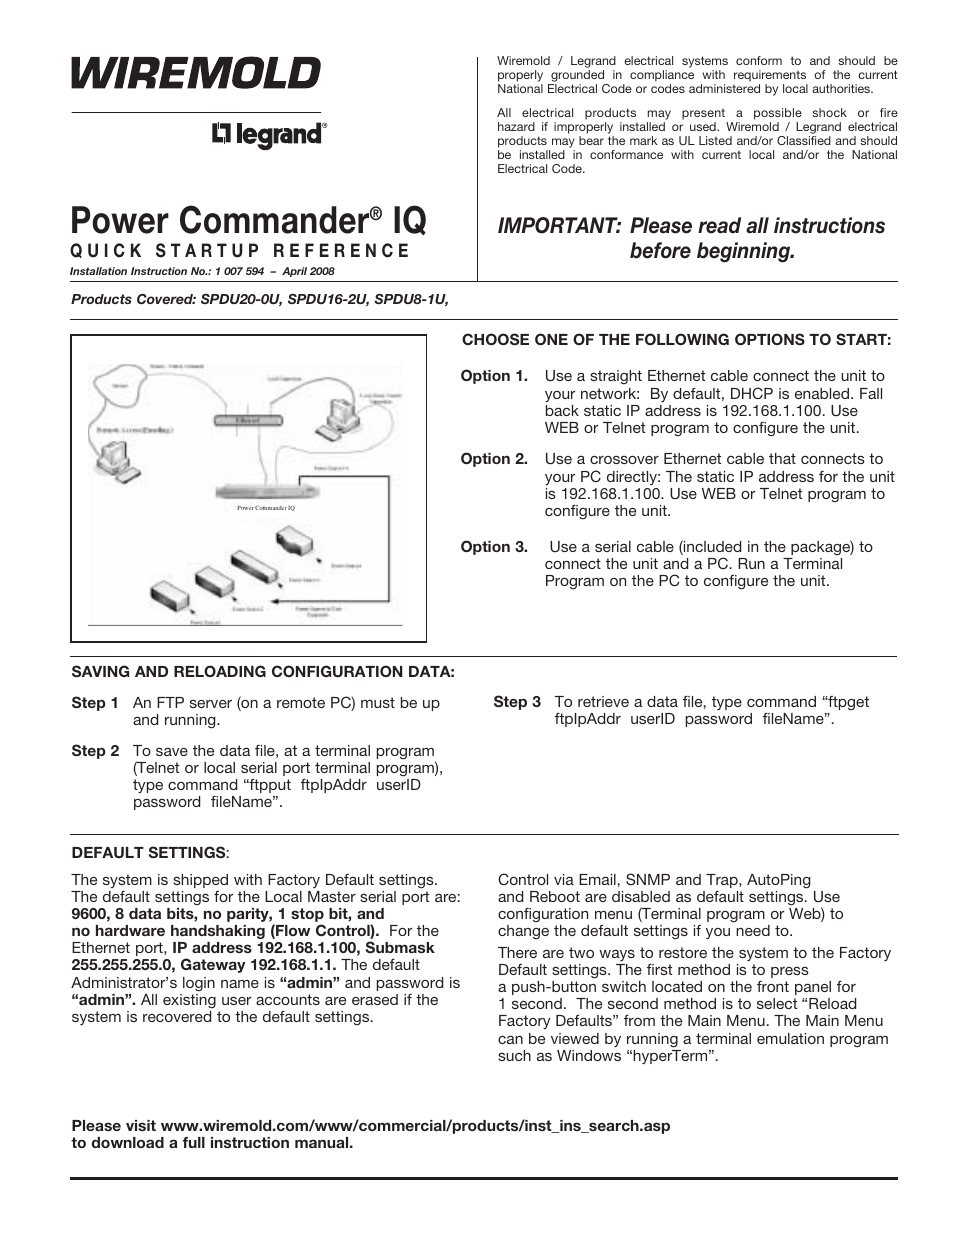 Rc product user manuals | rc toys sales and services. Power commander  downloads.